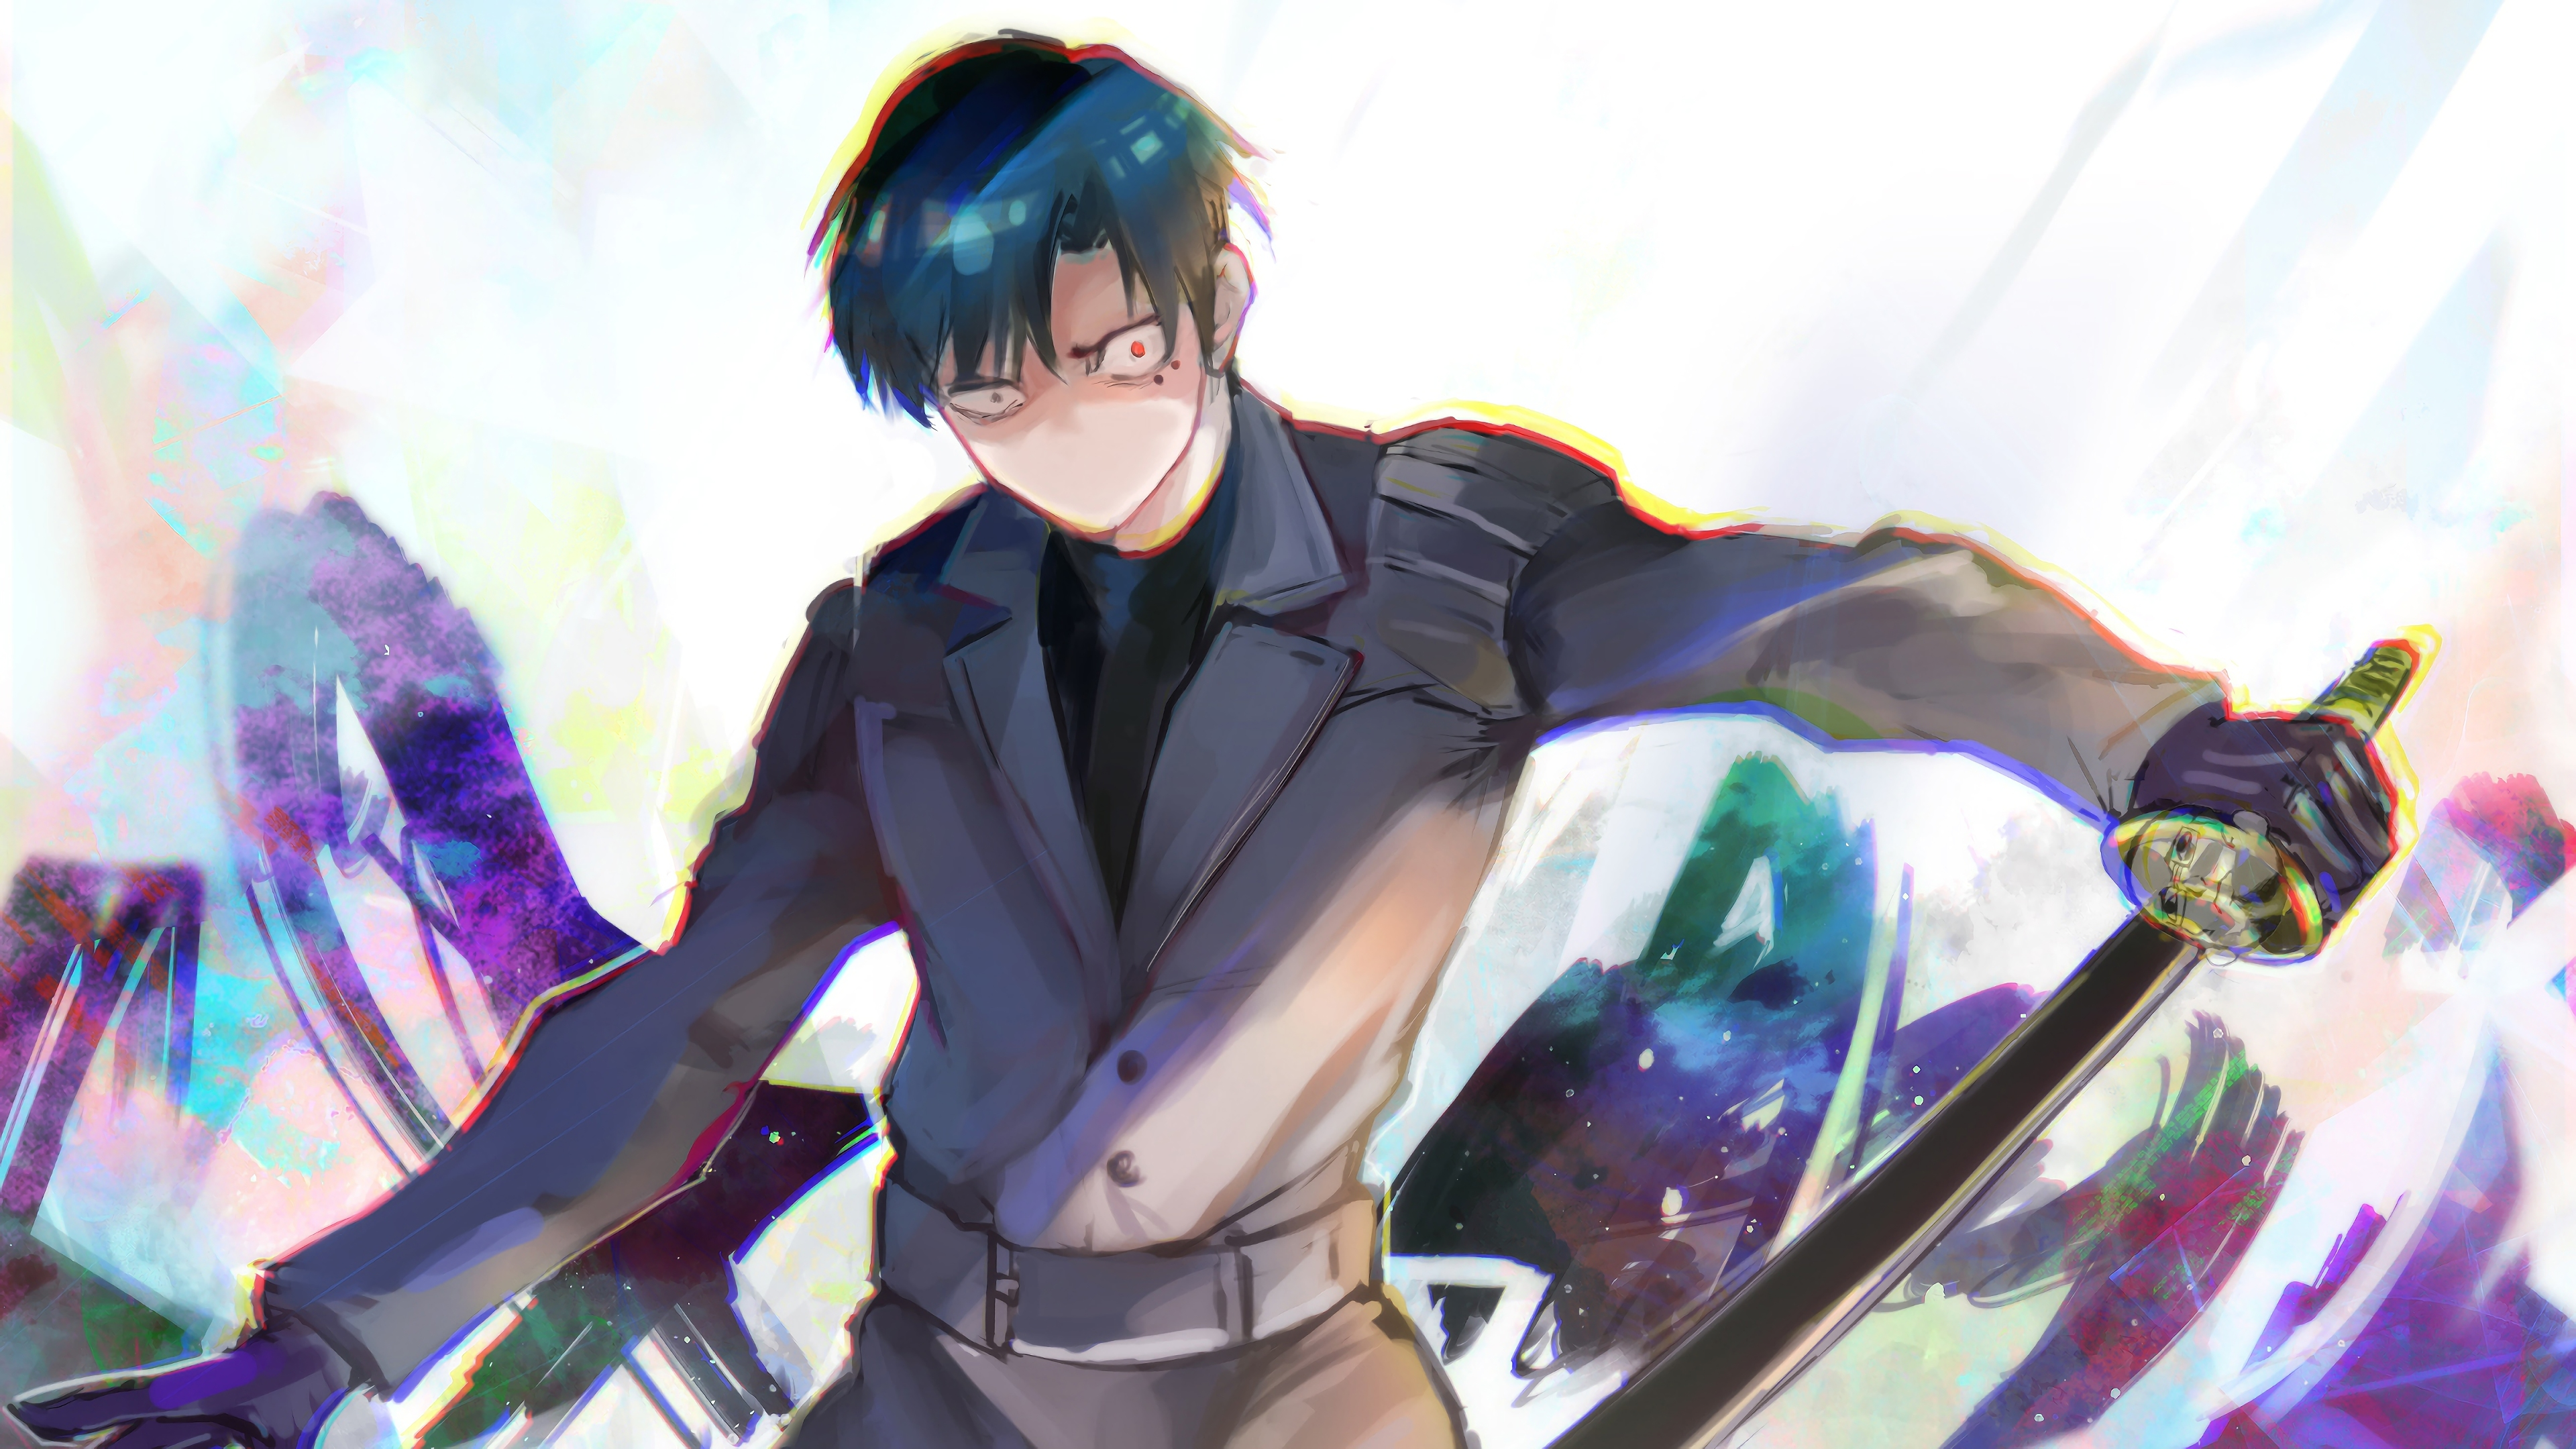 Tokyo Ghoul Re Background 4